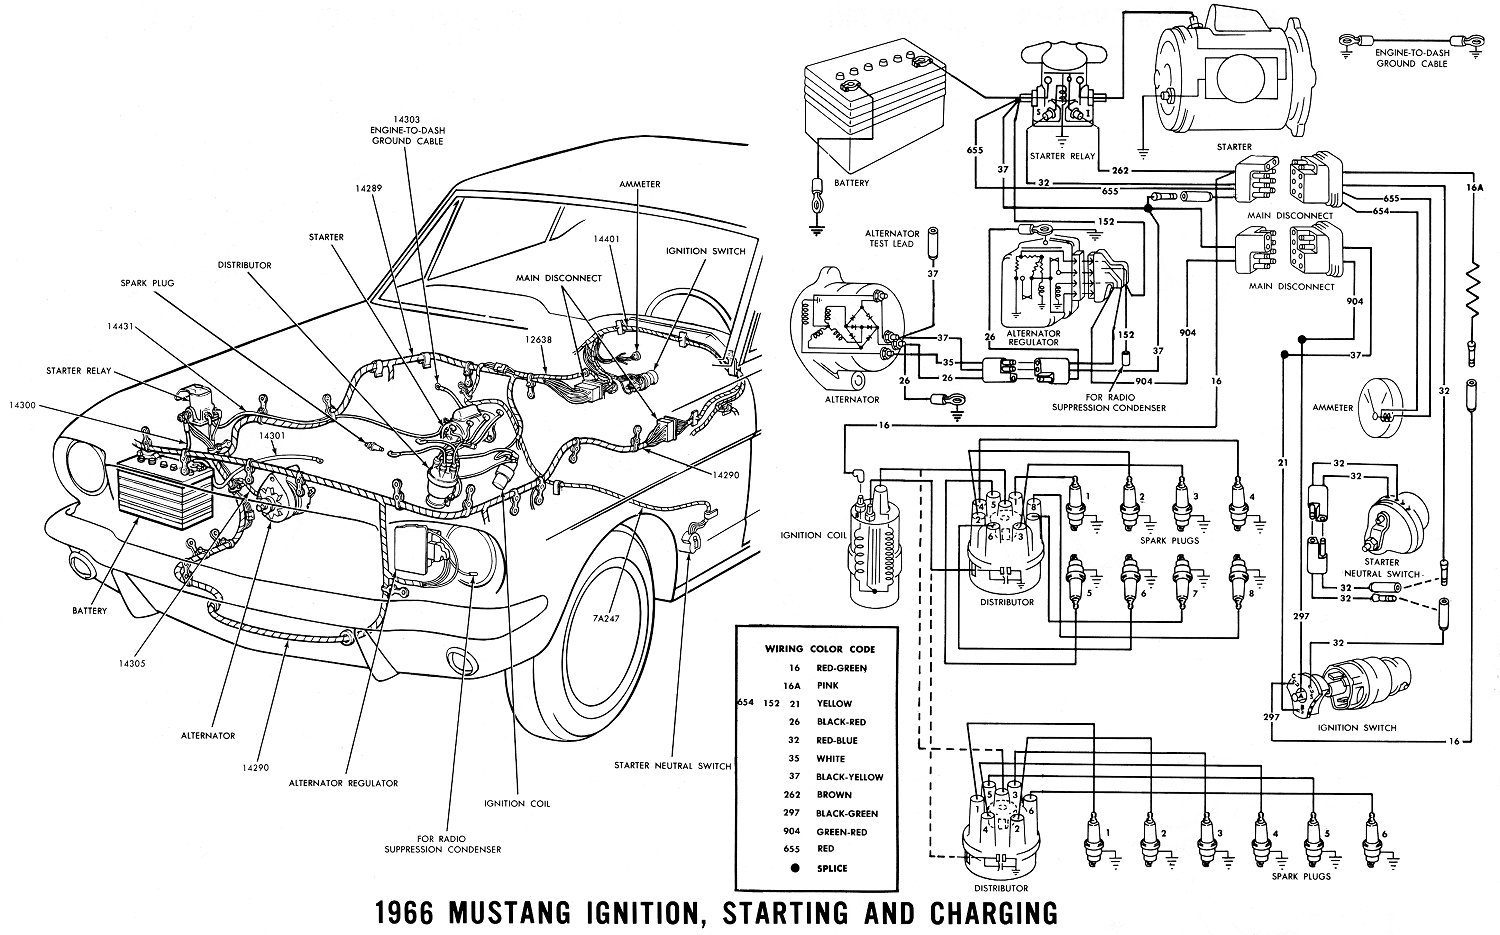 medium resolution of free auto wiring diagram 1966 mustang ignition wiring diagram 66 ford mustang wiring diagram 1967 ford